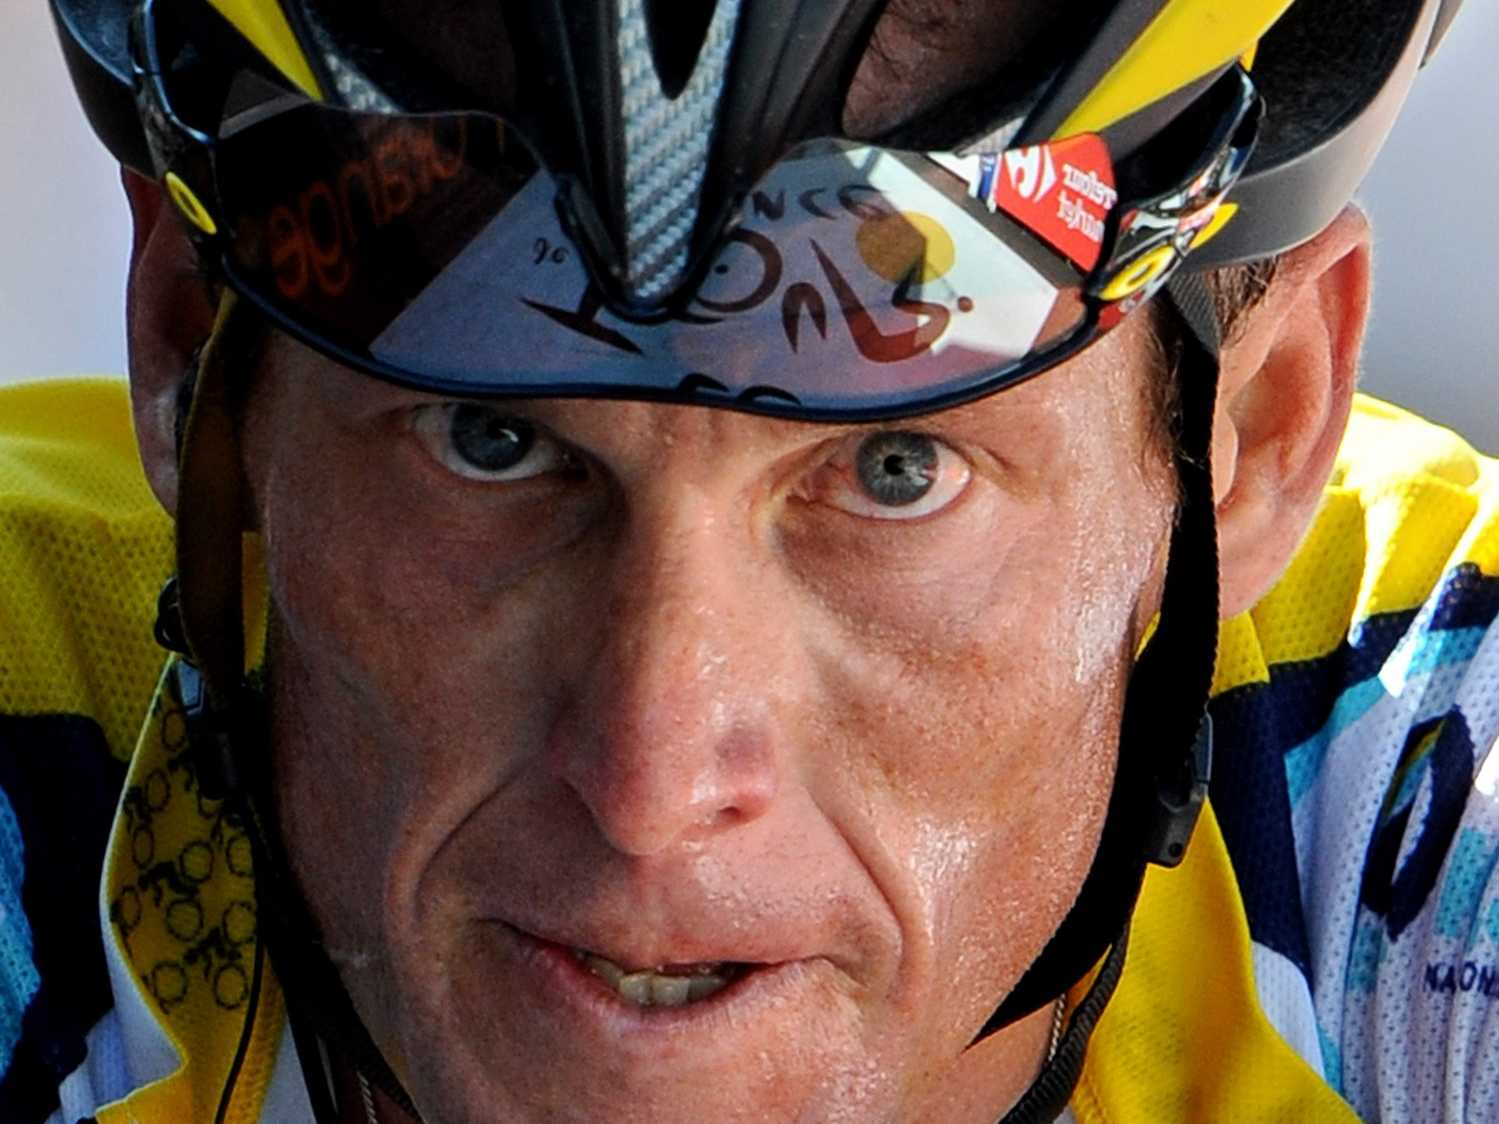 Timeline: Lance Armstrong's journey from deity to disgrace